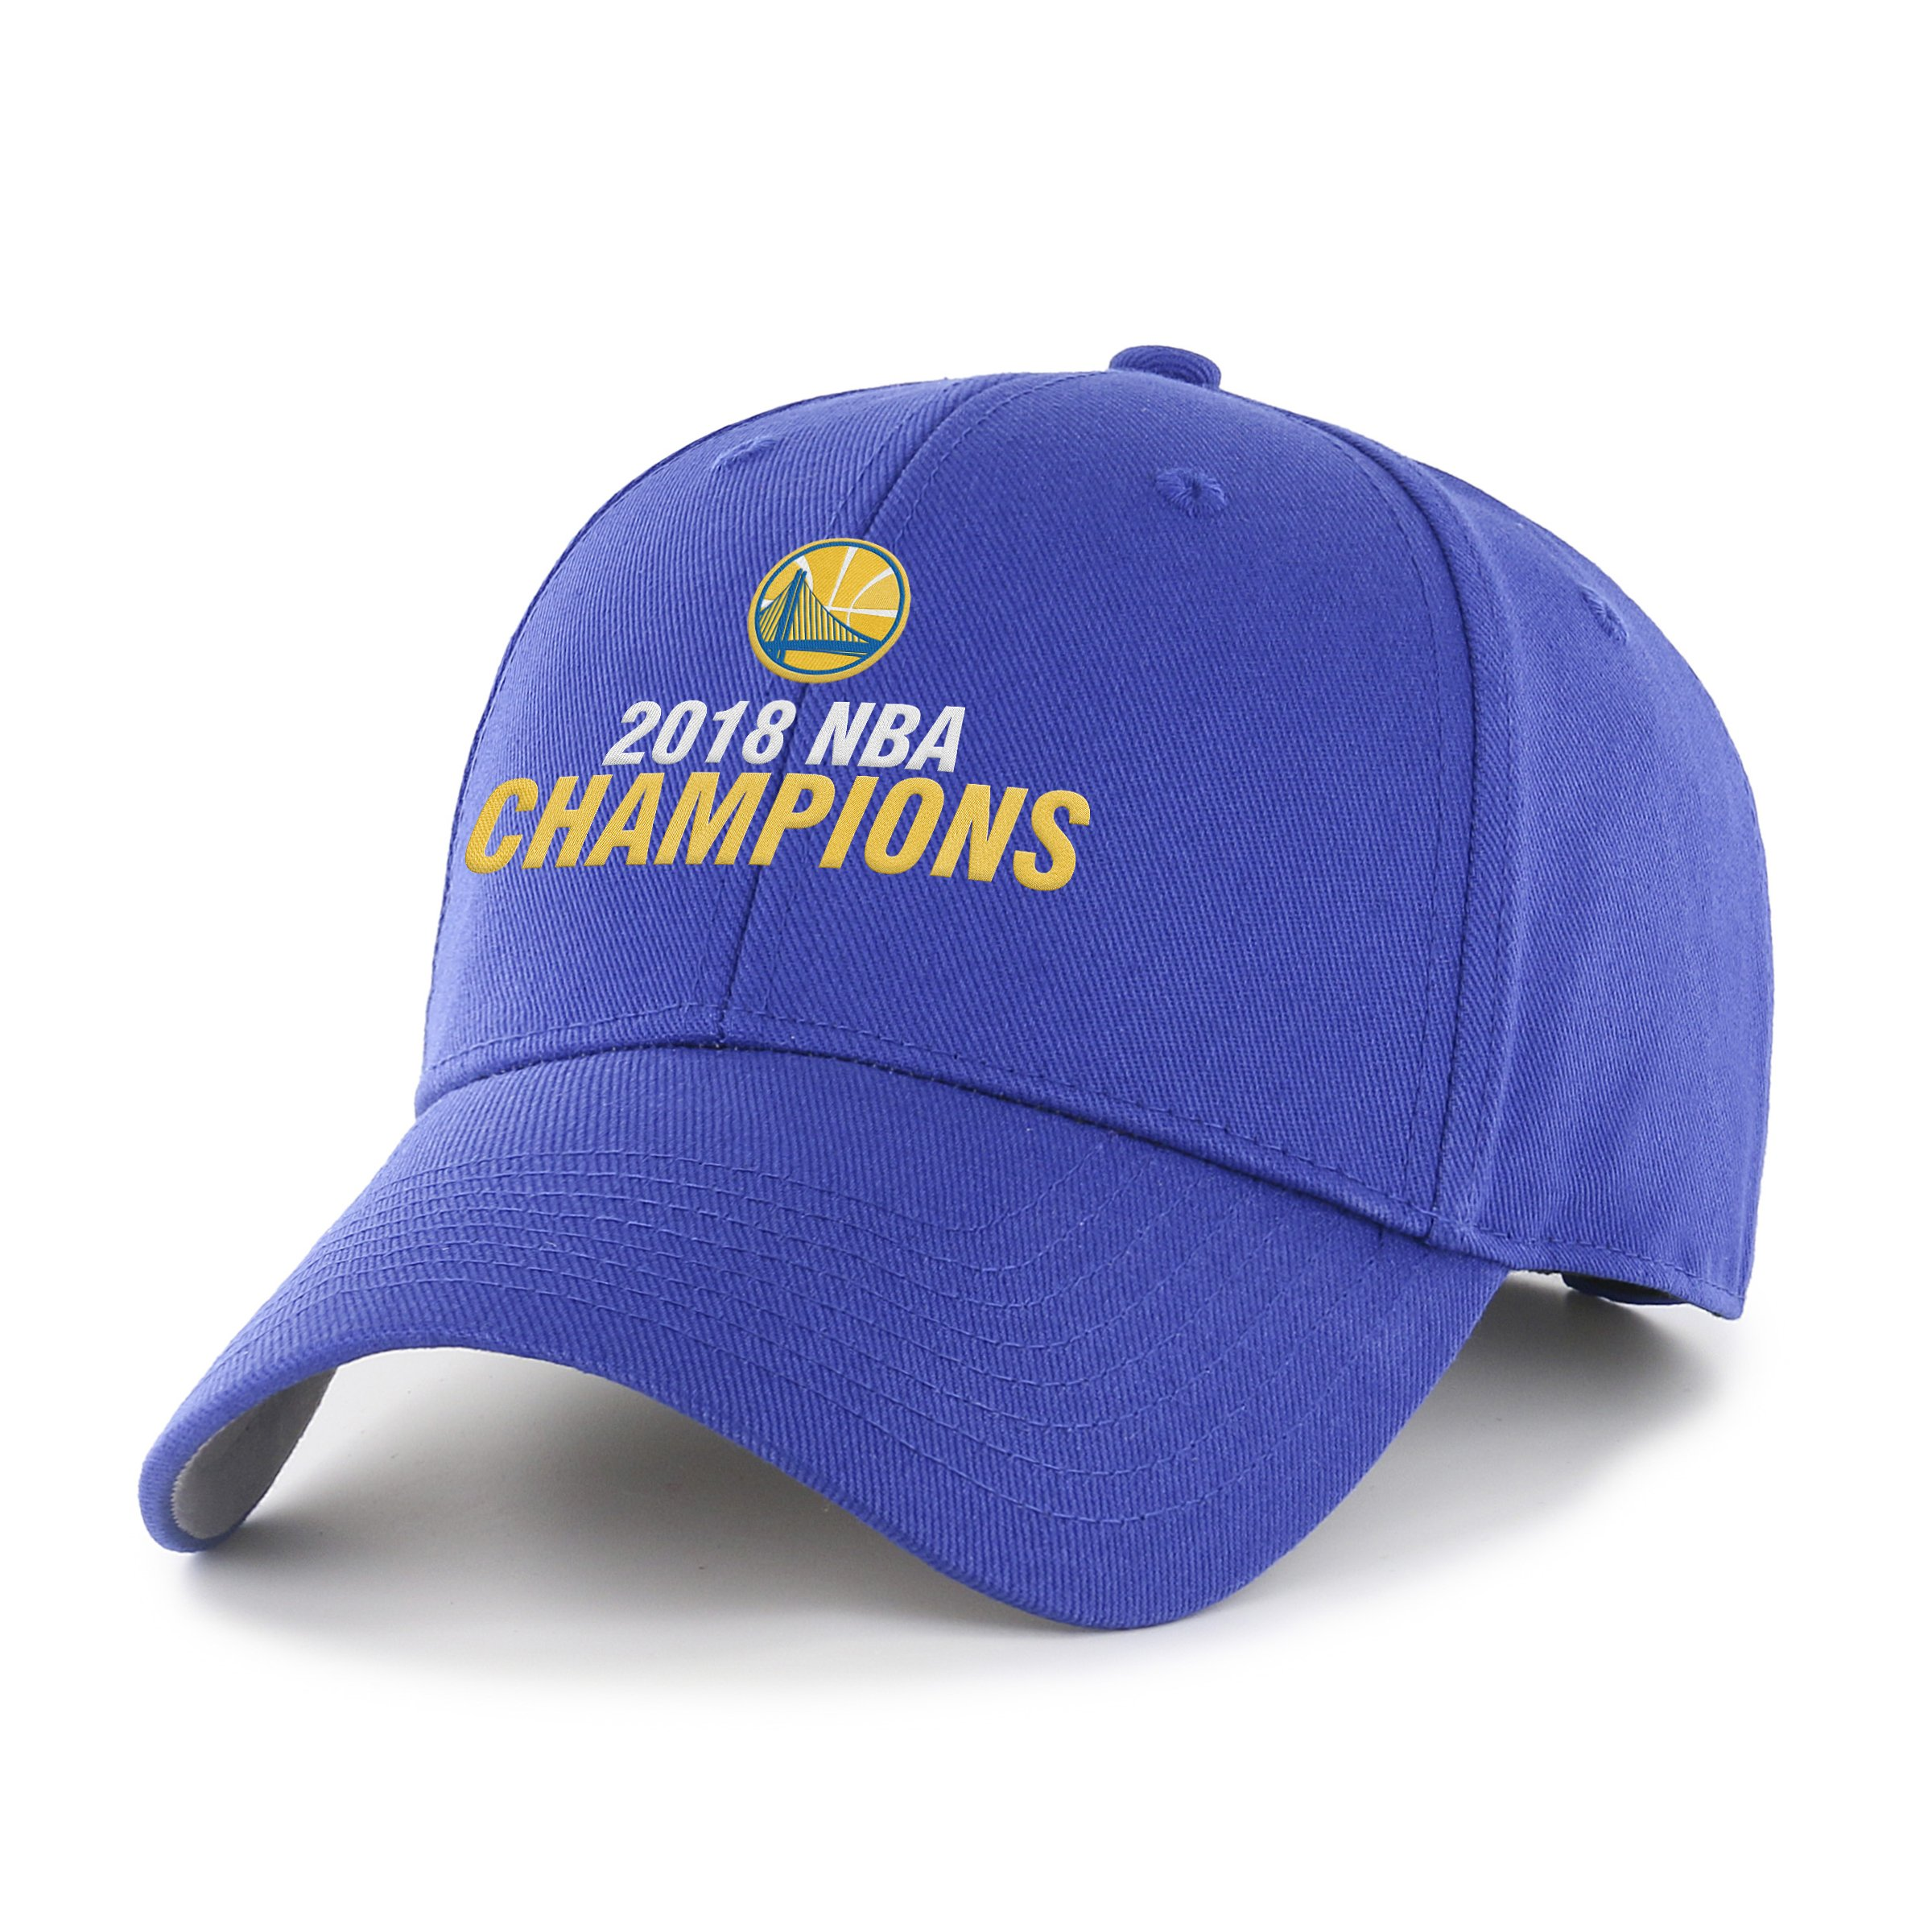 OTS NBA Golden State Warriors Unisex NBA 2018 Champions All-Star Adjustable Hat, Royal-Champs, One Size